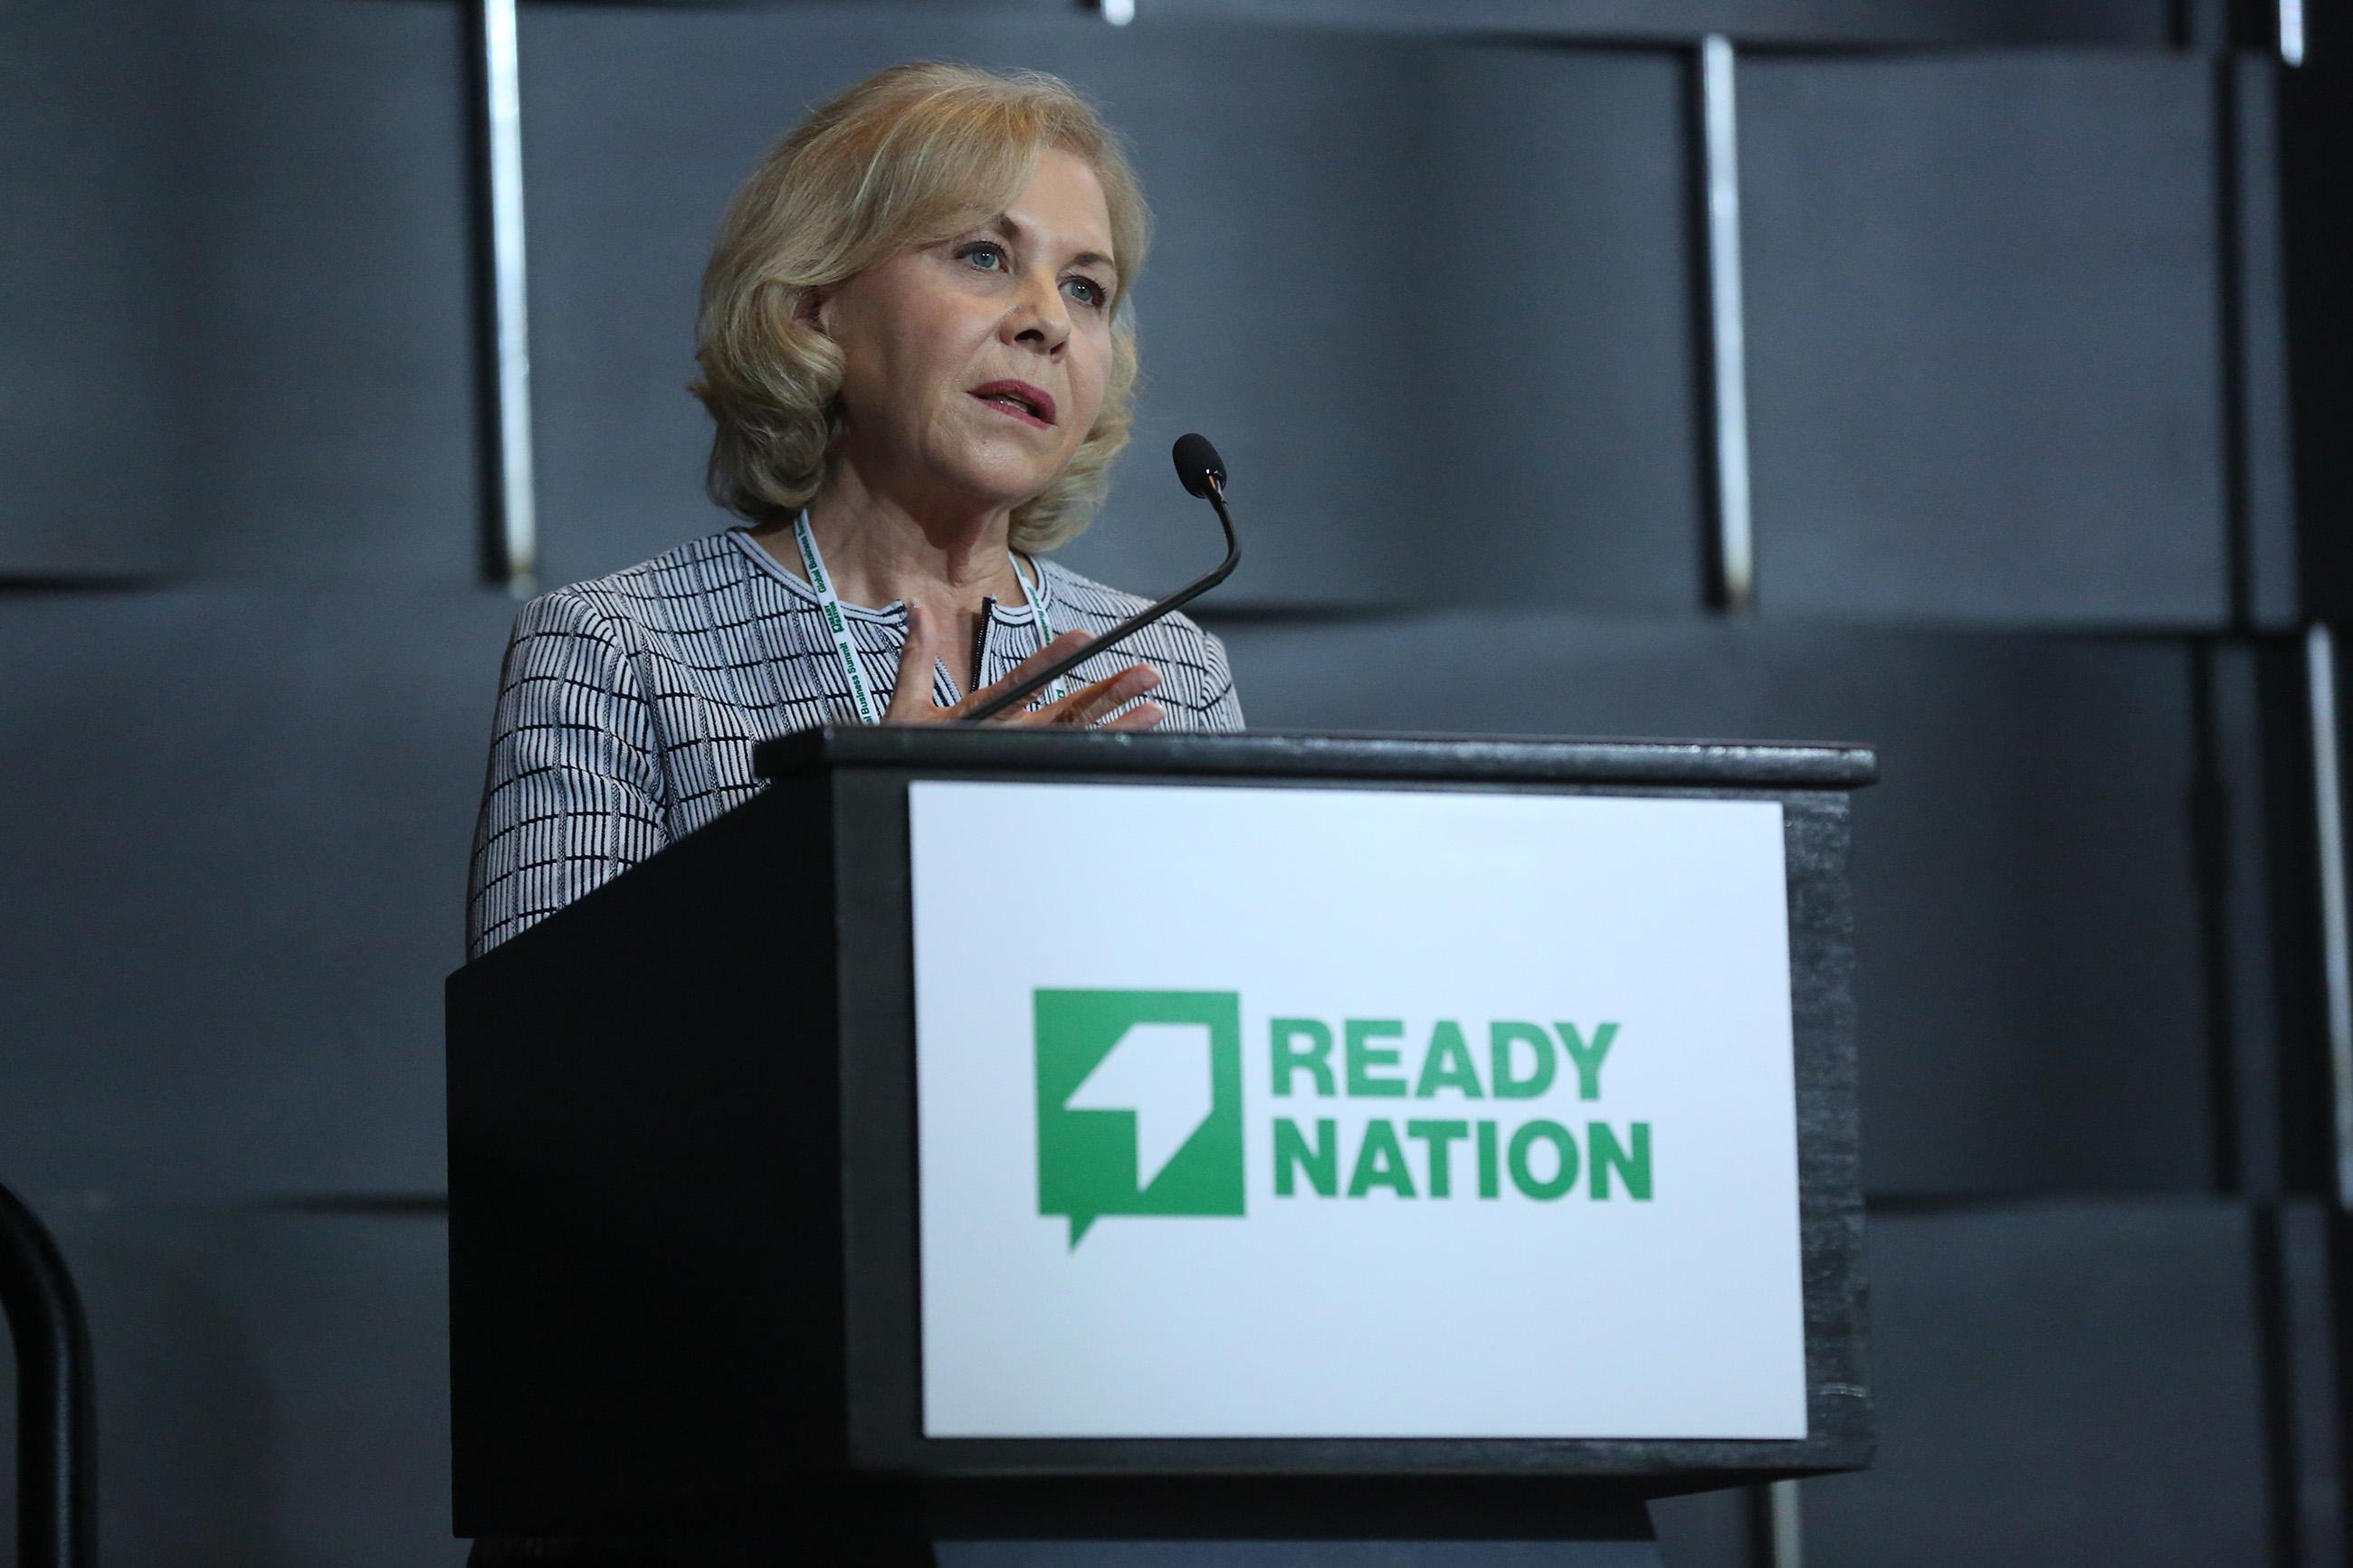 Primrose CEO Jo Kirchner addresses the importance of social entrepreneurship and innovation at the 2018 ReadyNation Global Business Summit.